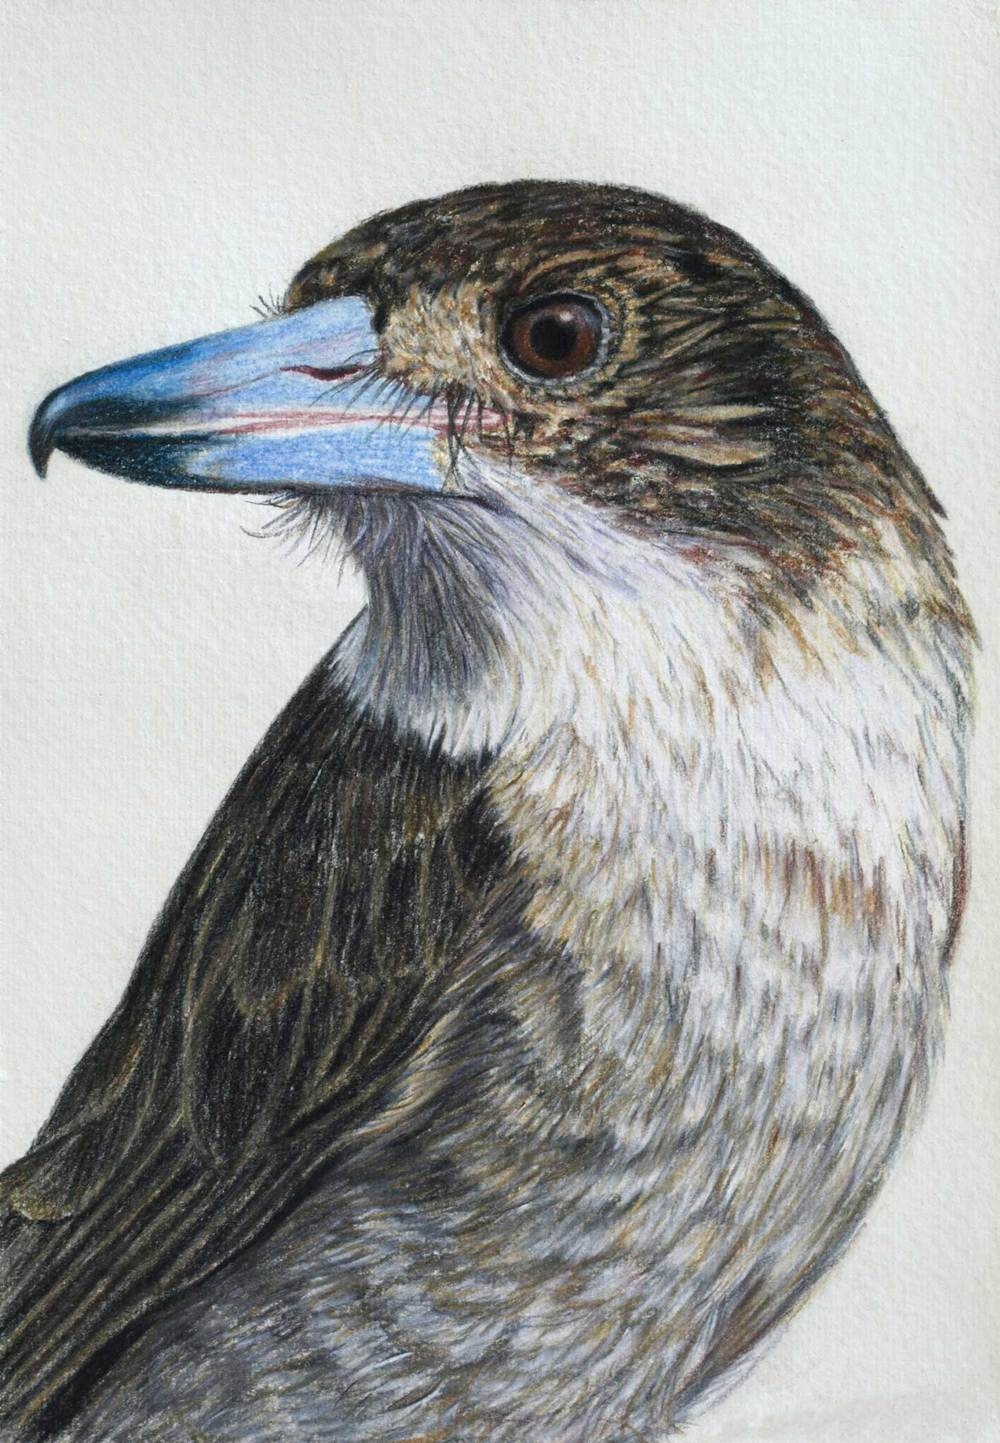 butcher-bird-drawing-rachel-newling.jpg